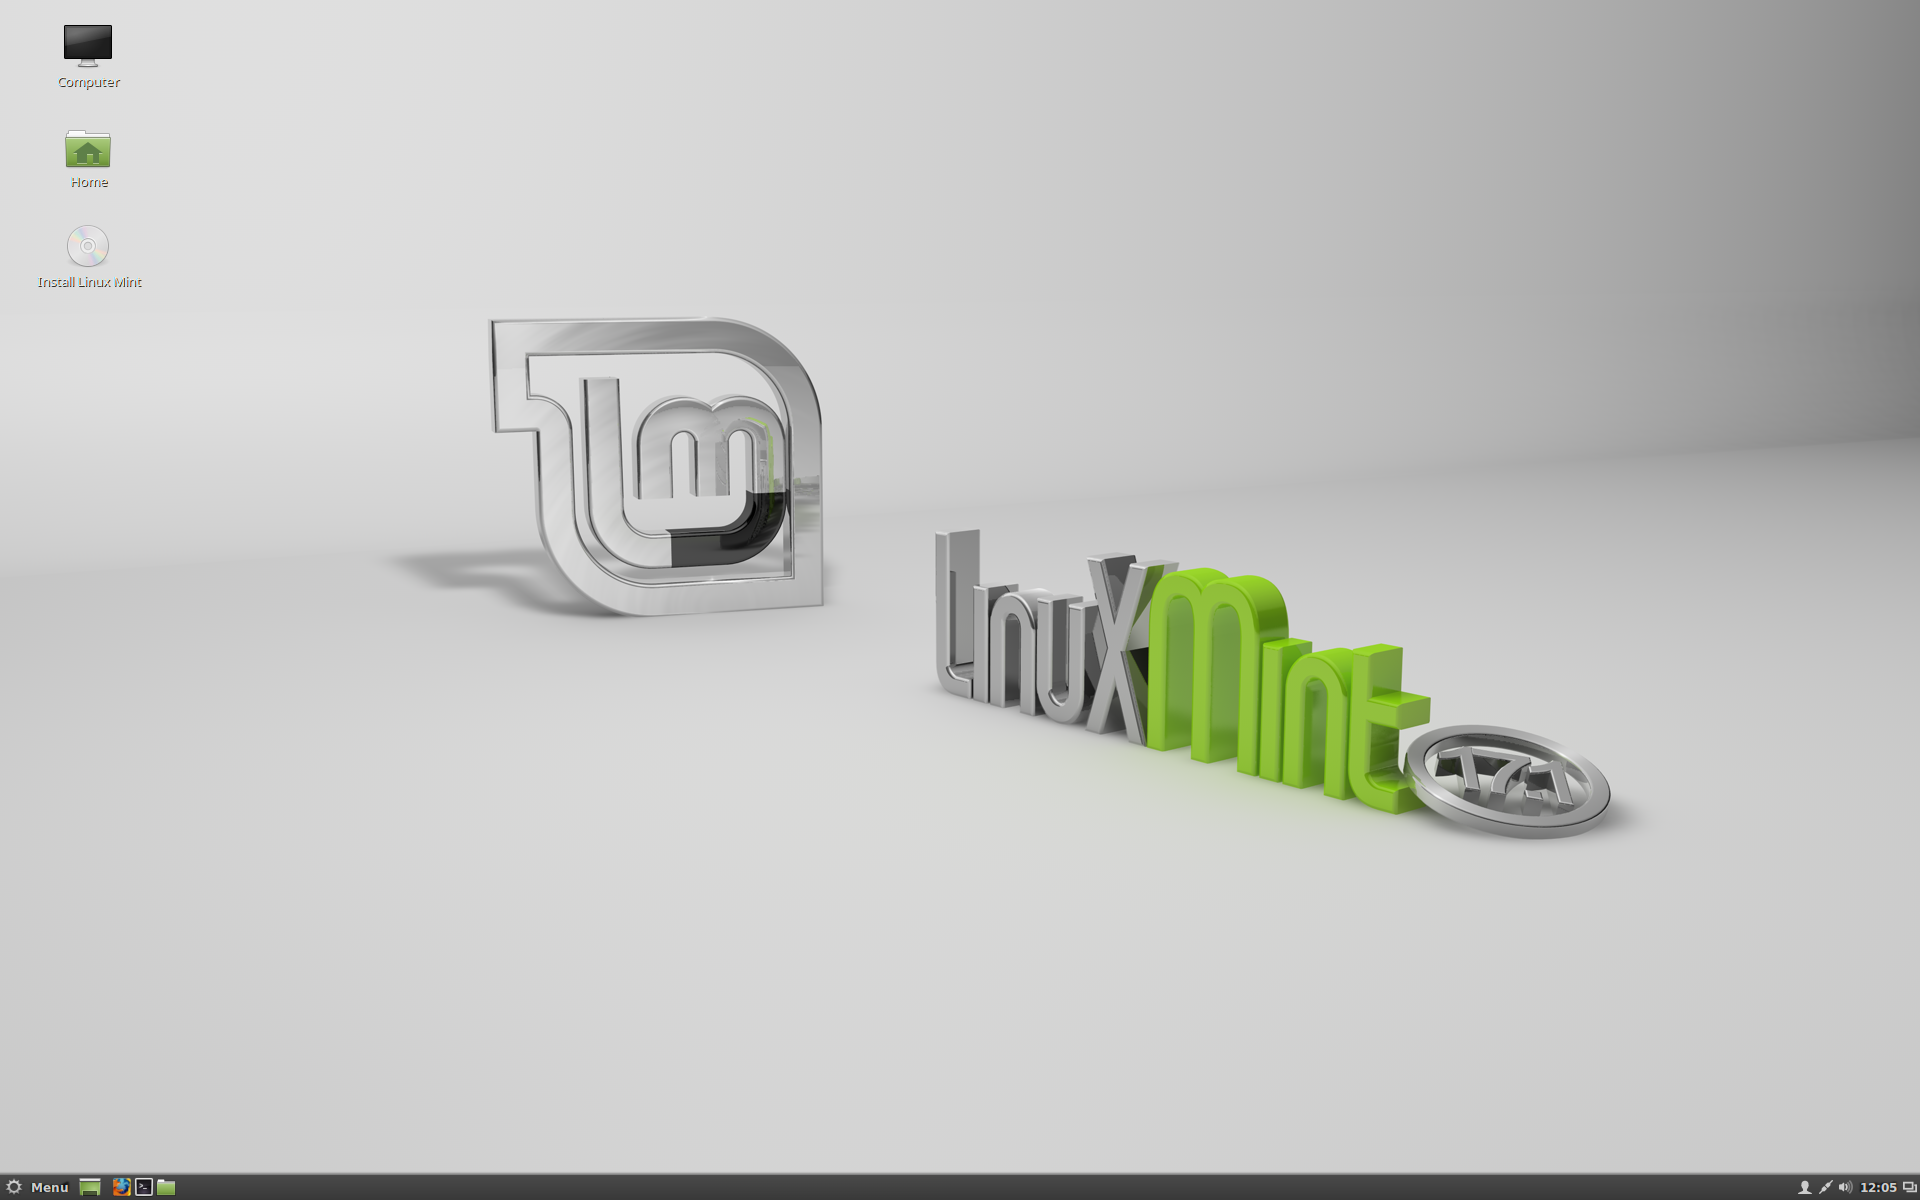 Cansado de windows y mac? conoce linux